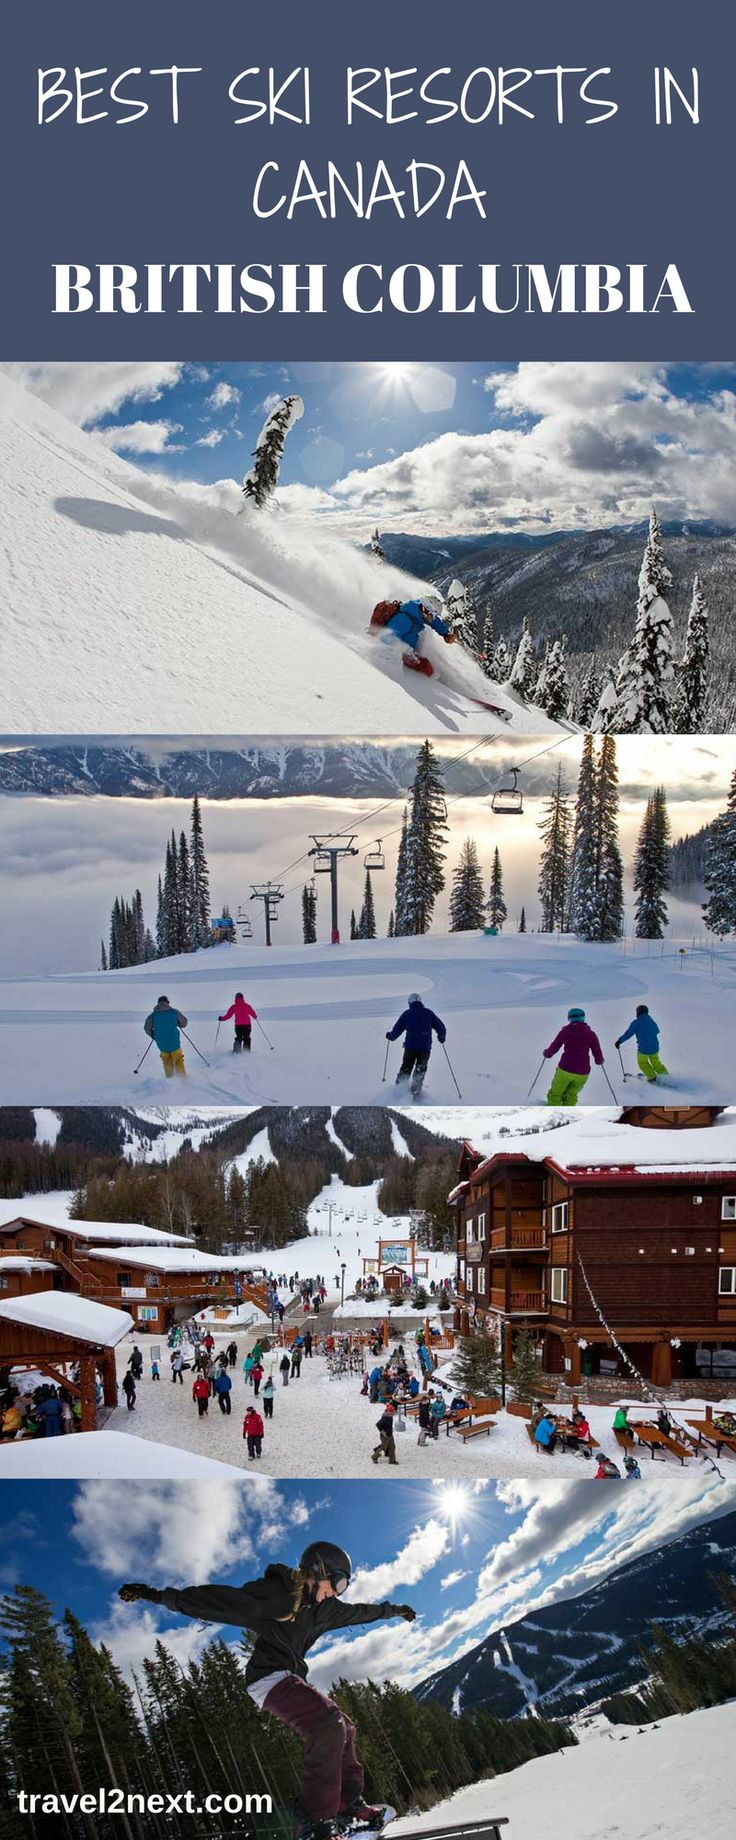 Skiing in Canada | Best Ski Resorts in Canada | Ski Canada. Canada is enormously attractive to skiers and snowboarders. With regular snow dumps, groomed slopes and well-planned mountains with plenty of facilities, it's no wonder Canada is popular.